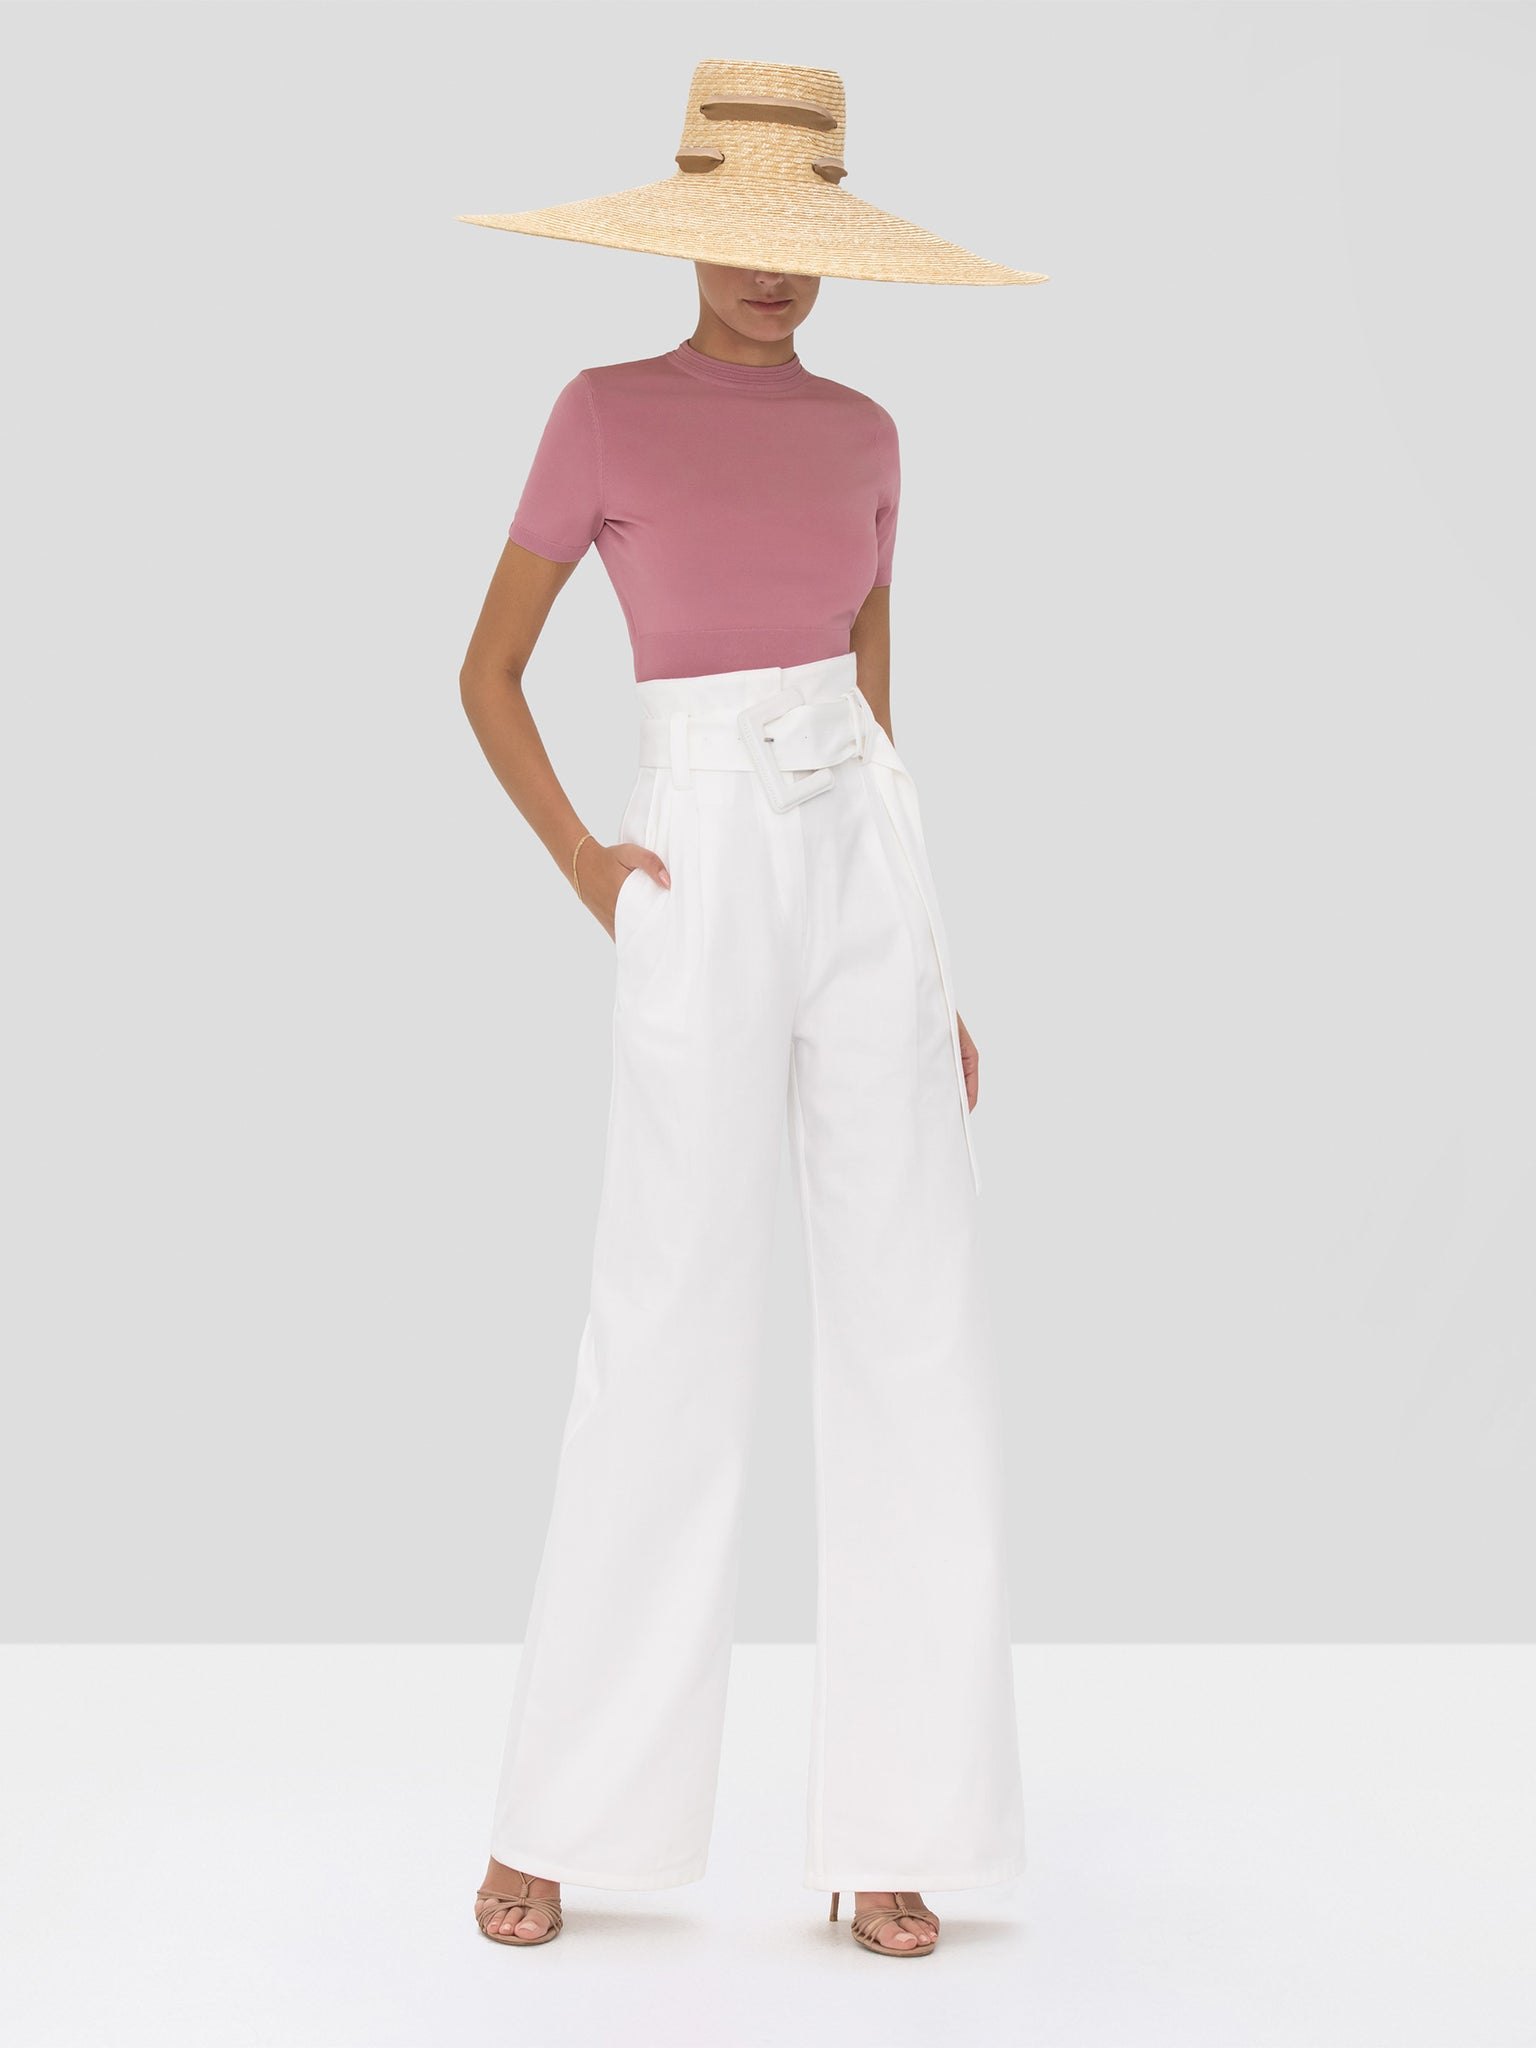 Alexis Finzi Crop Top in Dusty Rose from the Spring Summer 2020 Collection